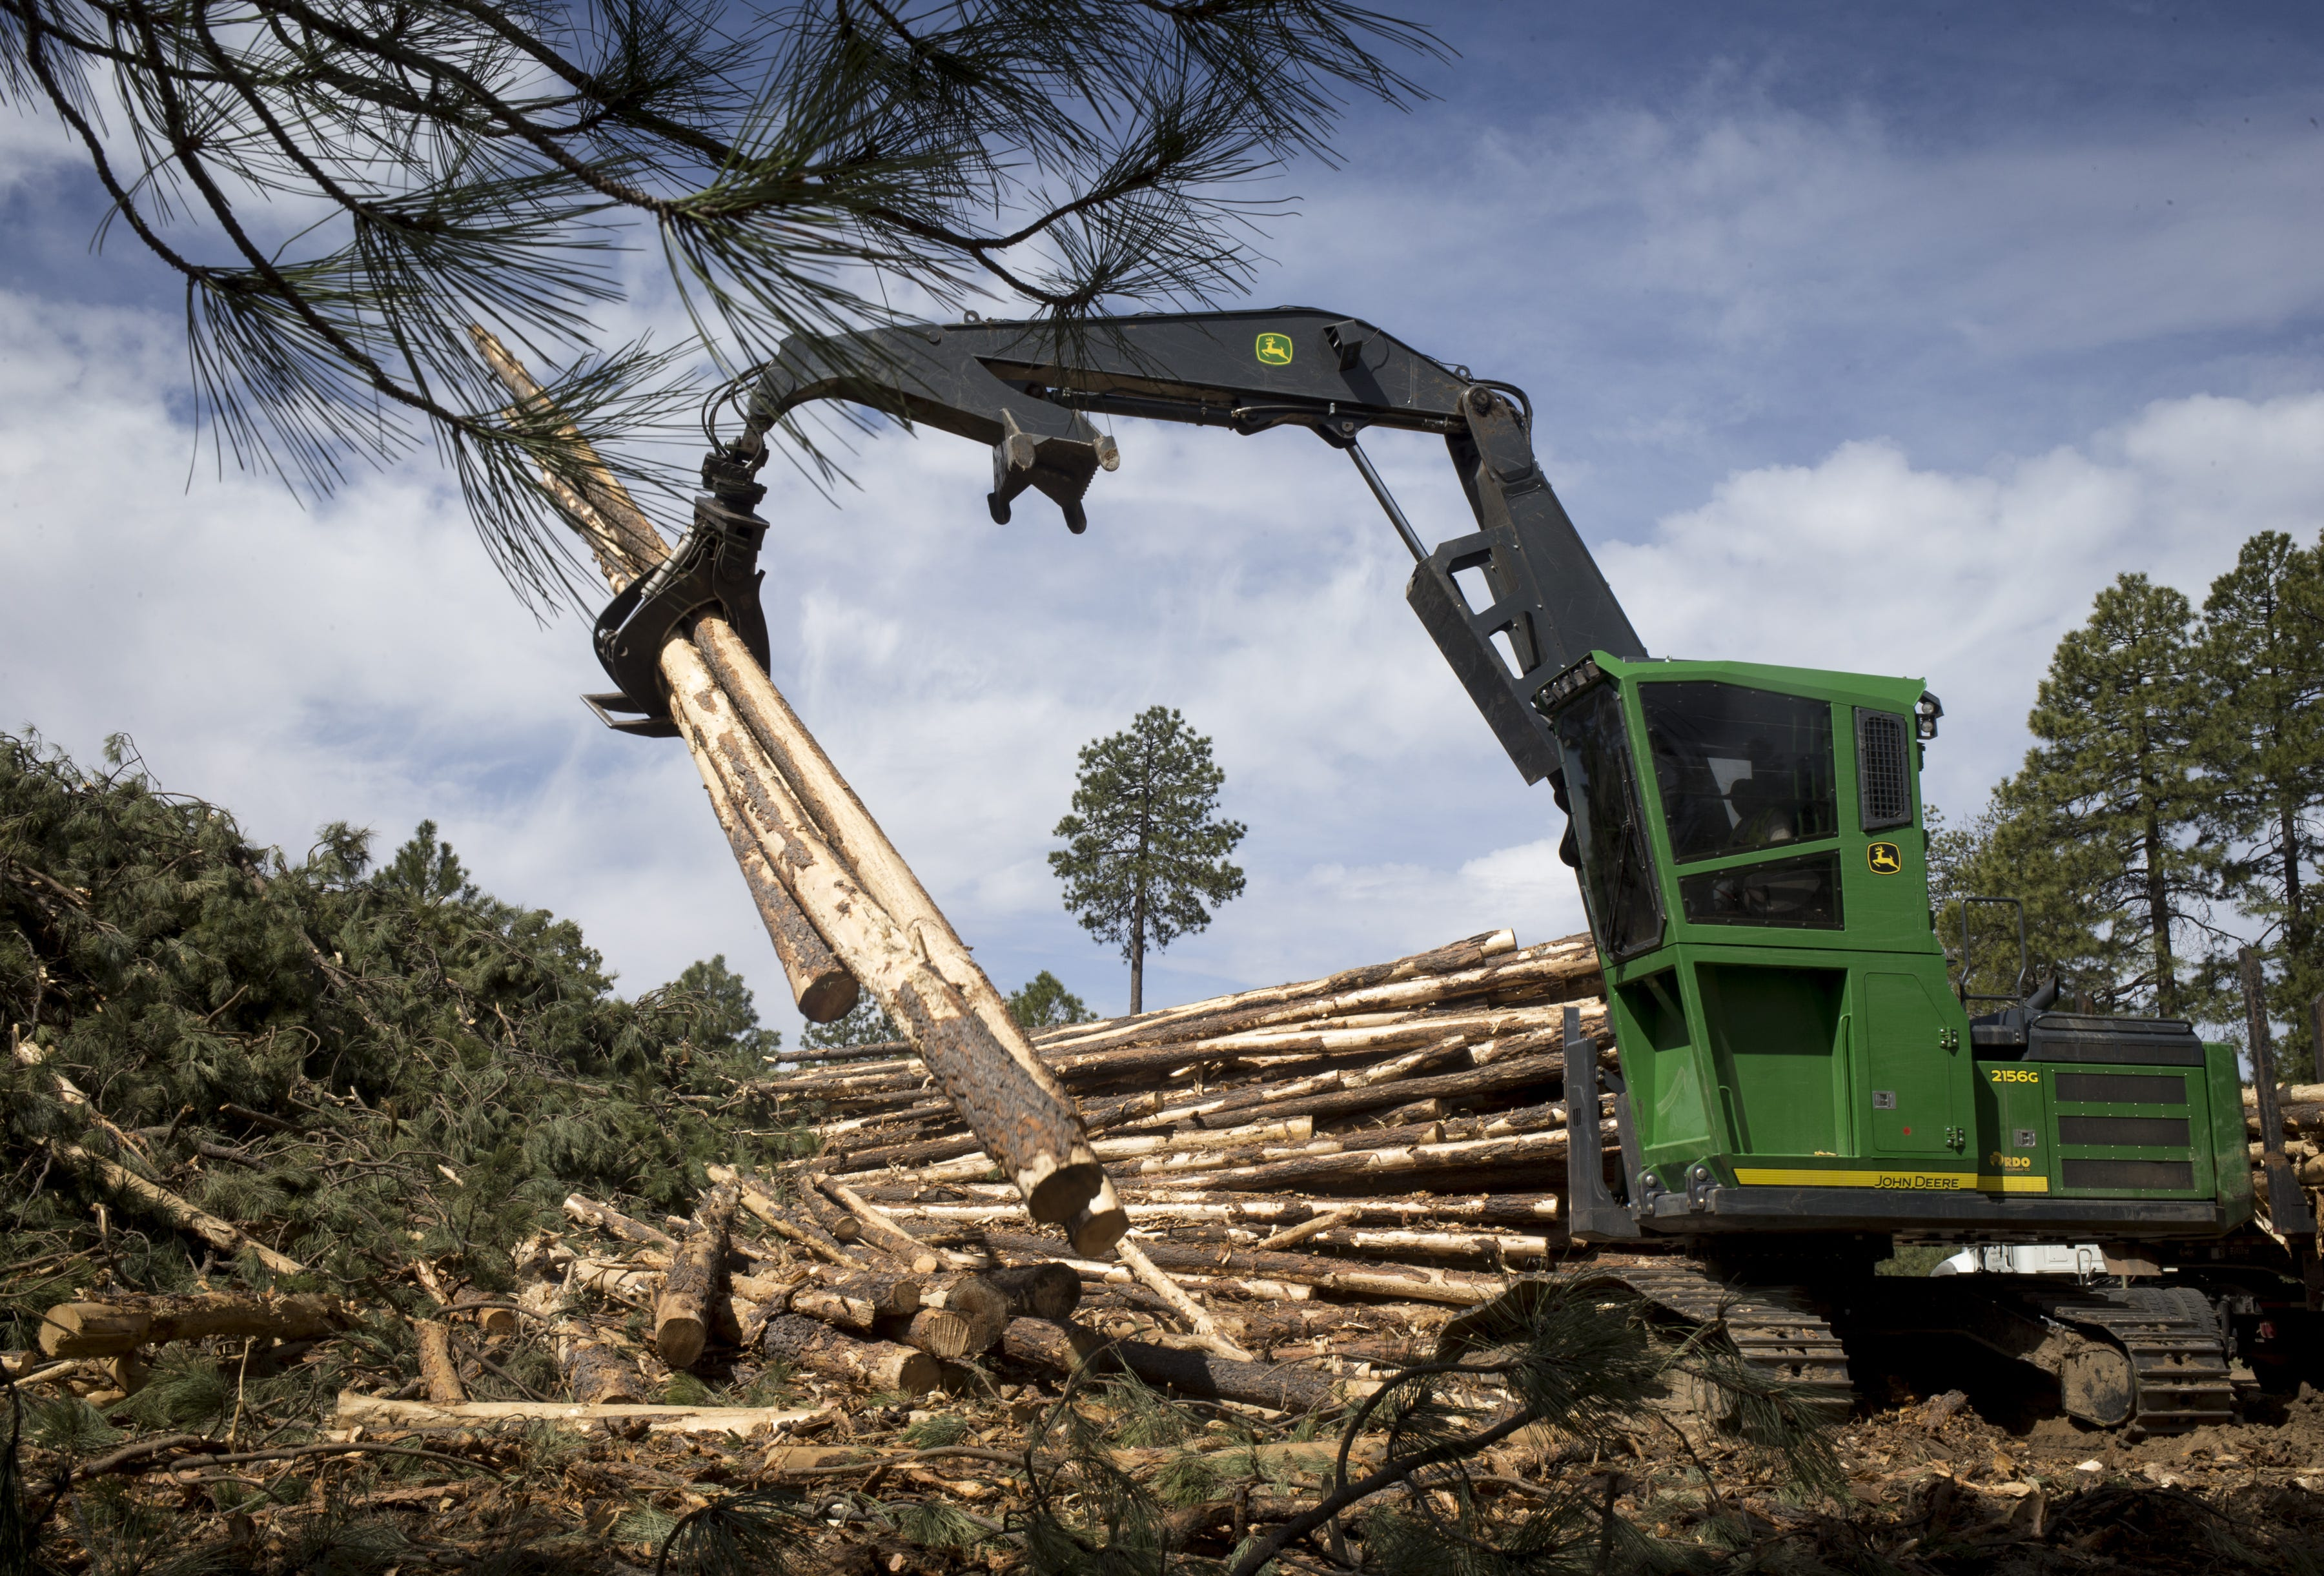 Tri Star Logging workers cut pines destined for sawmills or an adjacent biomass electric plant. Clearing patches to produce grassy meadows helps contain the spread of wildfires.